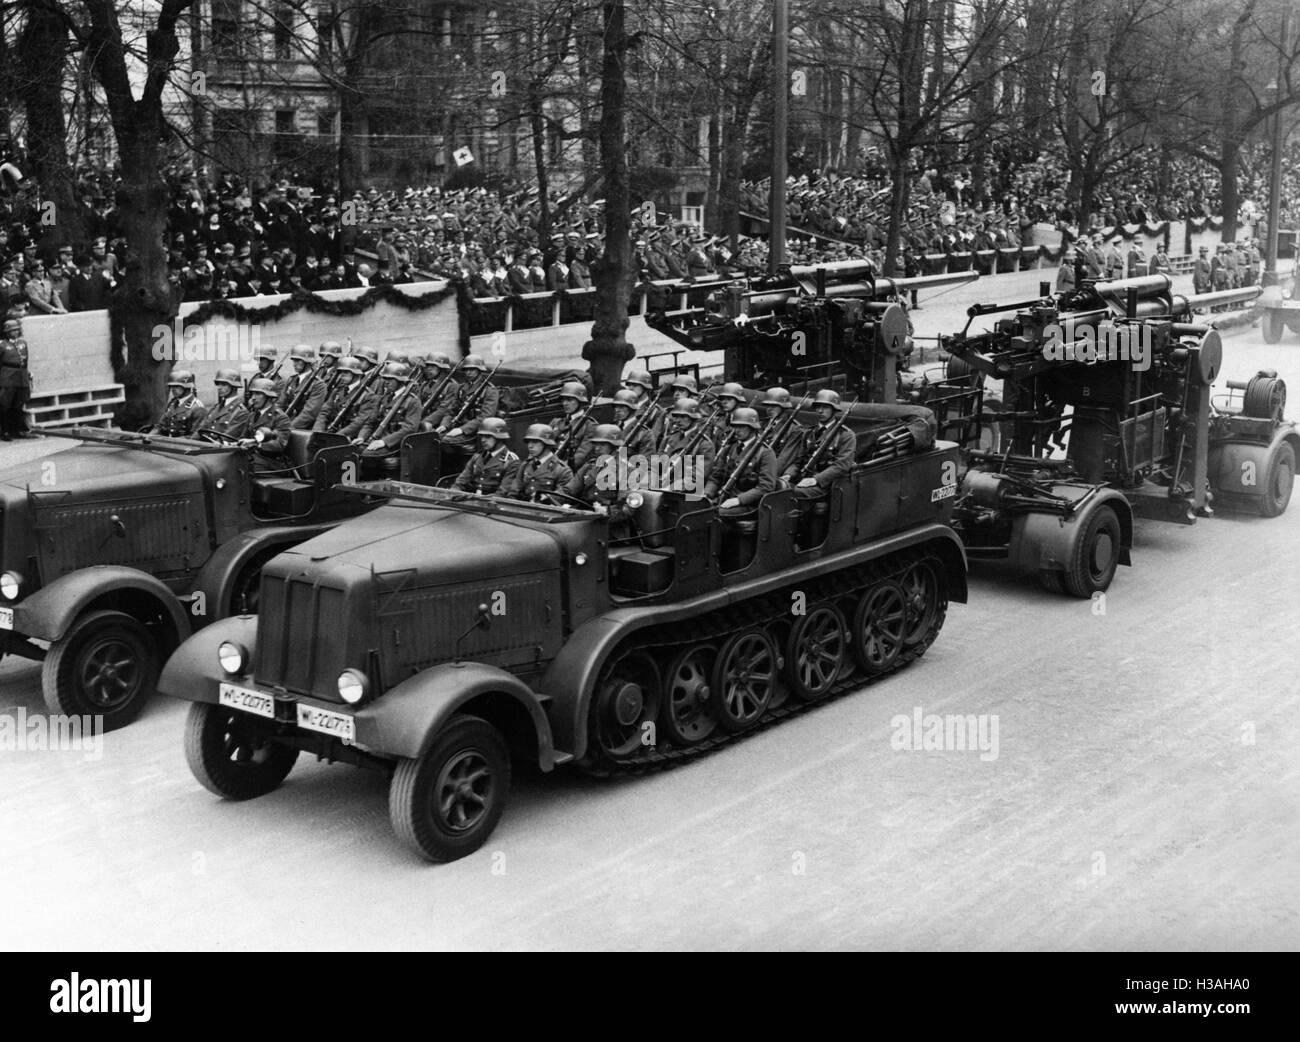 Military parade in honor of the birthday of Adolf Hitler, 1937 - Stock Image